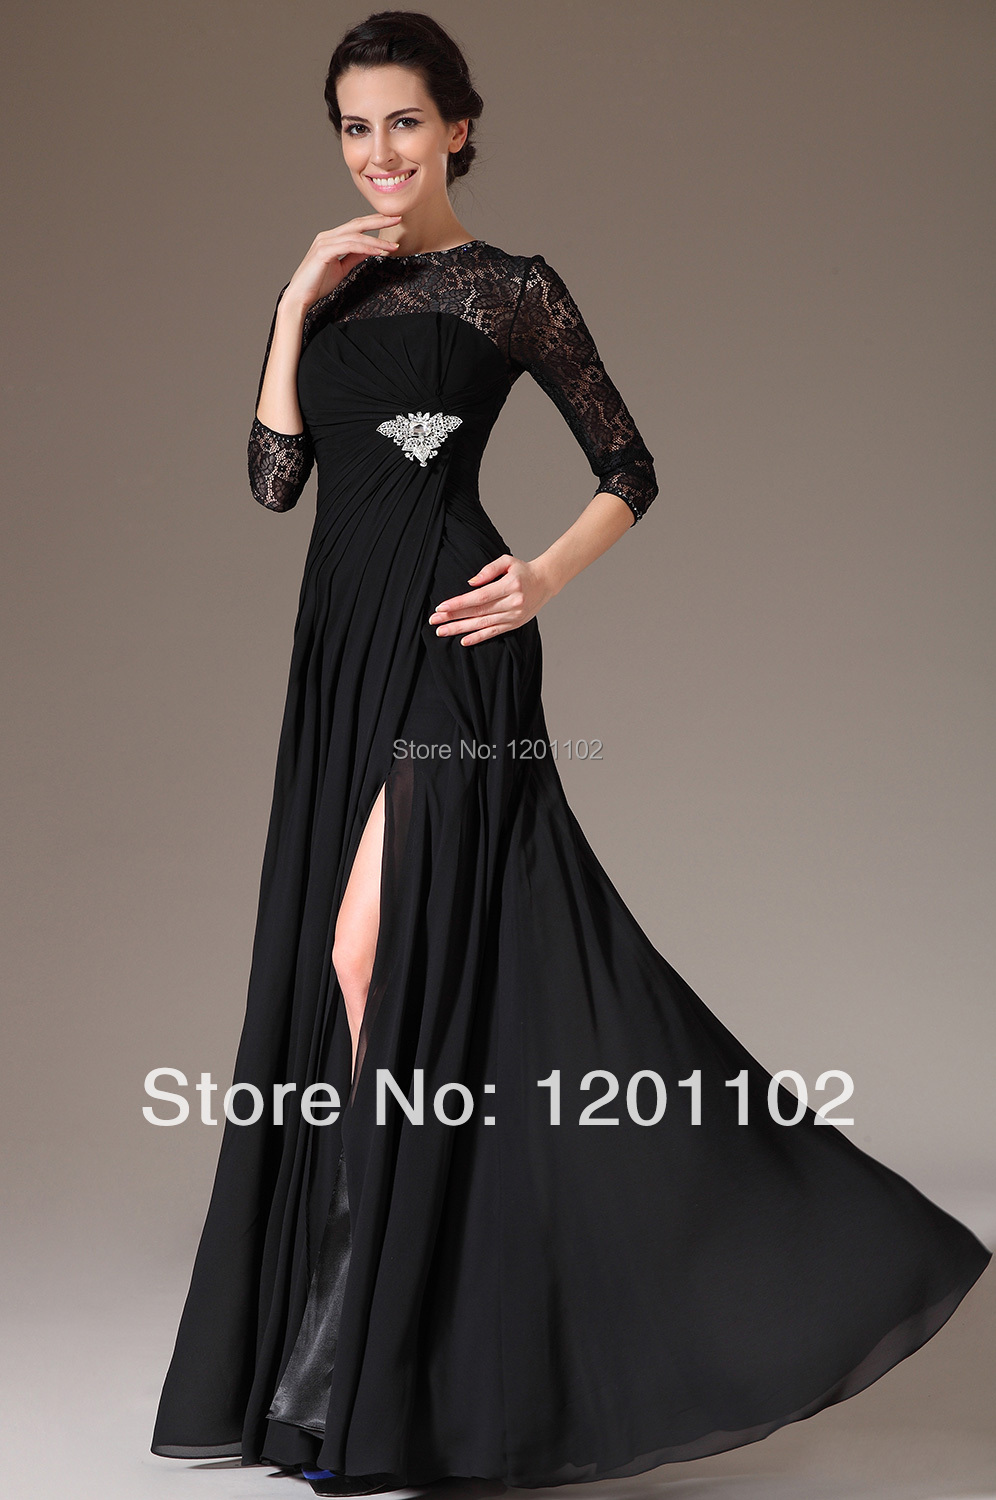 Dorable Black Gala Gown Gallery - Wedding and flowers ispiration ...